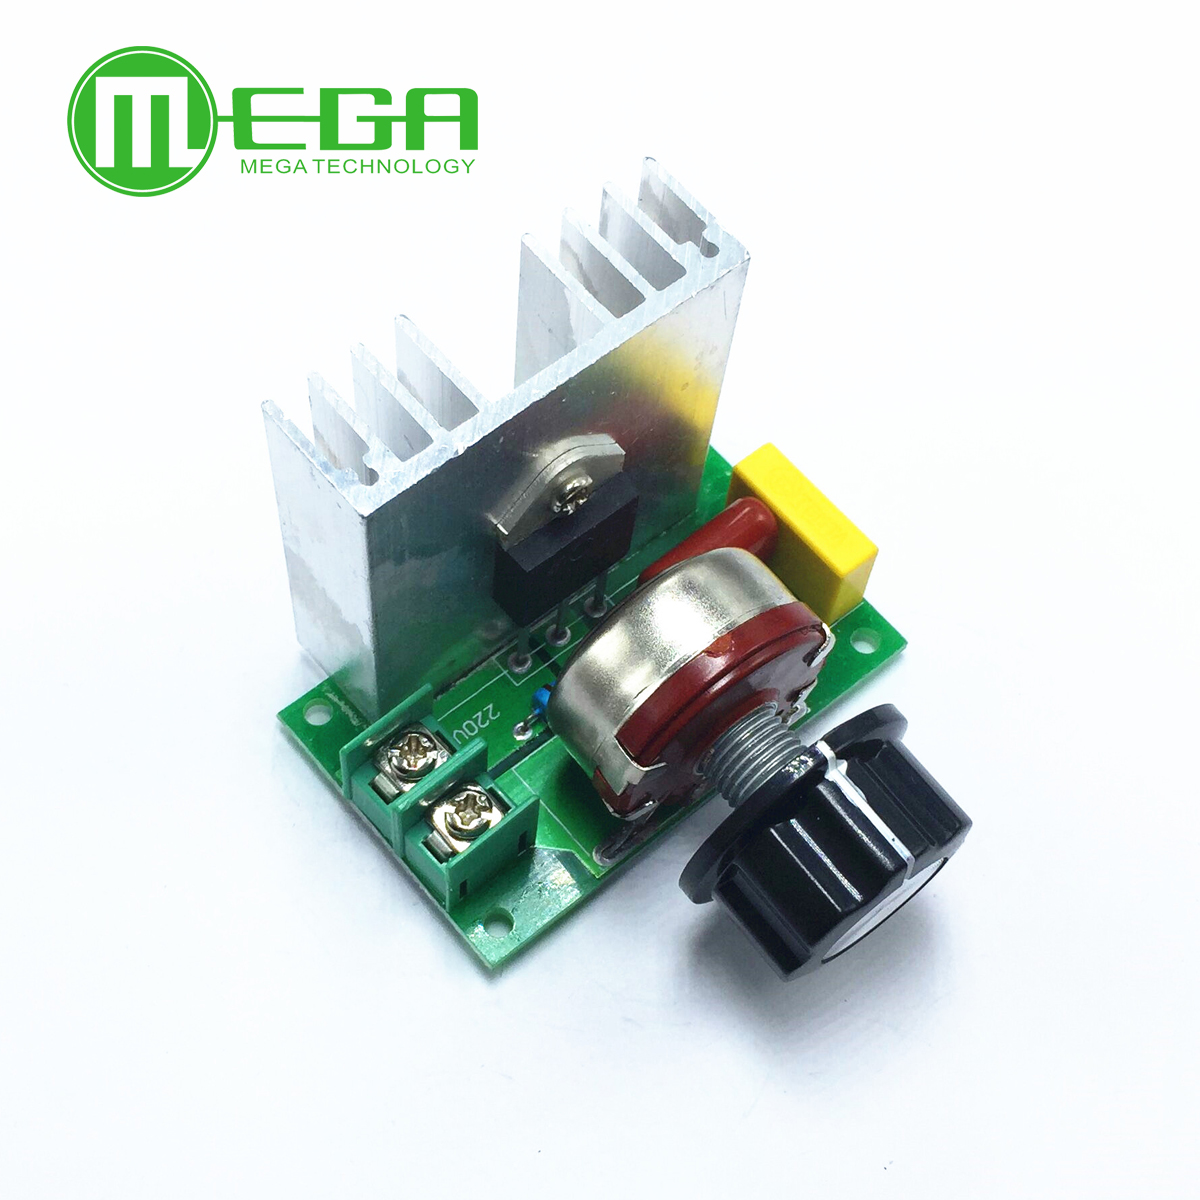 4000w Scr Electronic Voltage Regulator Speed Controller Control High Power Alarm Driver Circuit Design Board Governor Dimmer Module Ac 220v